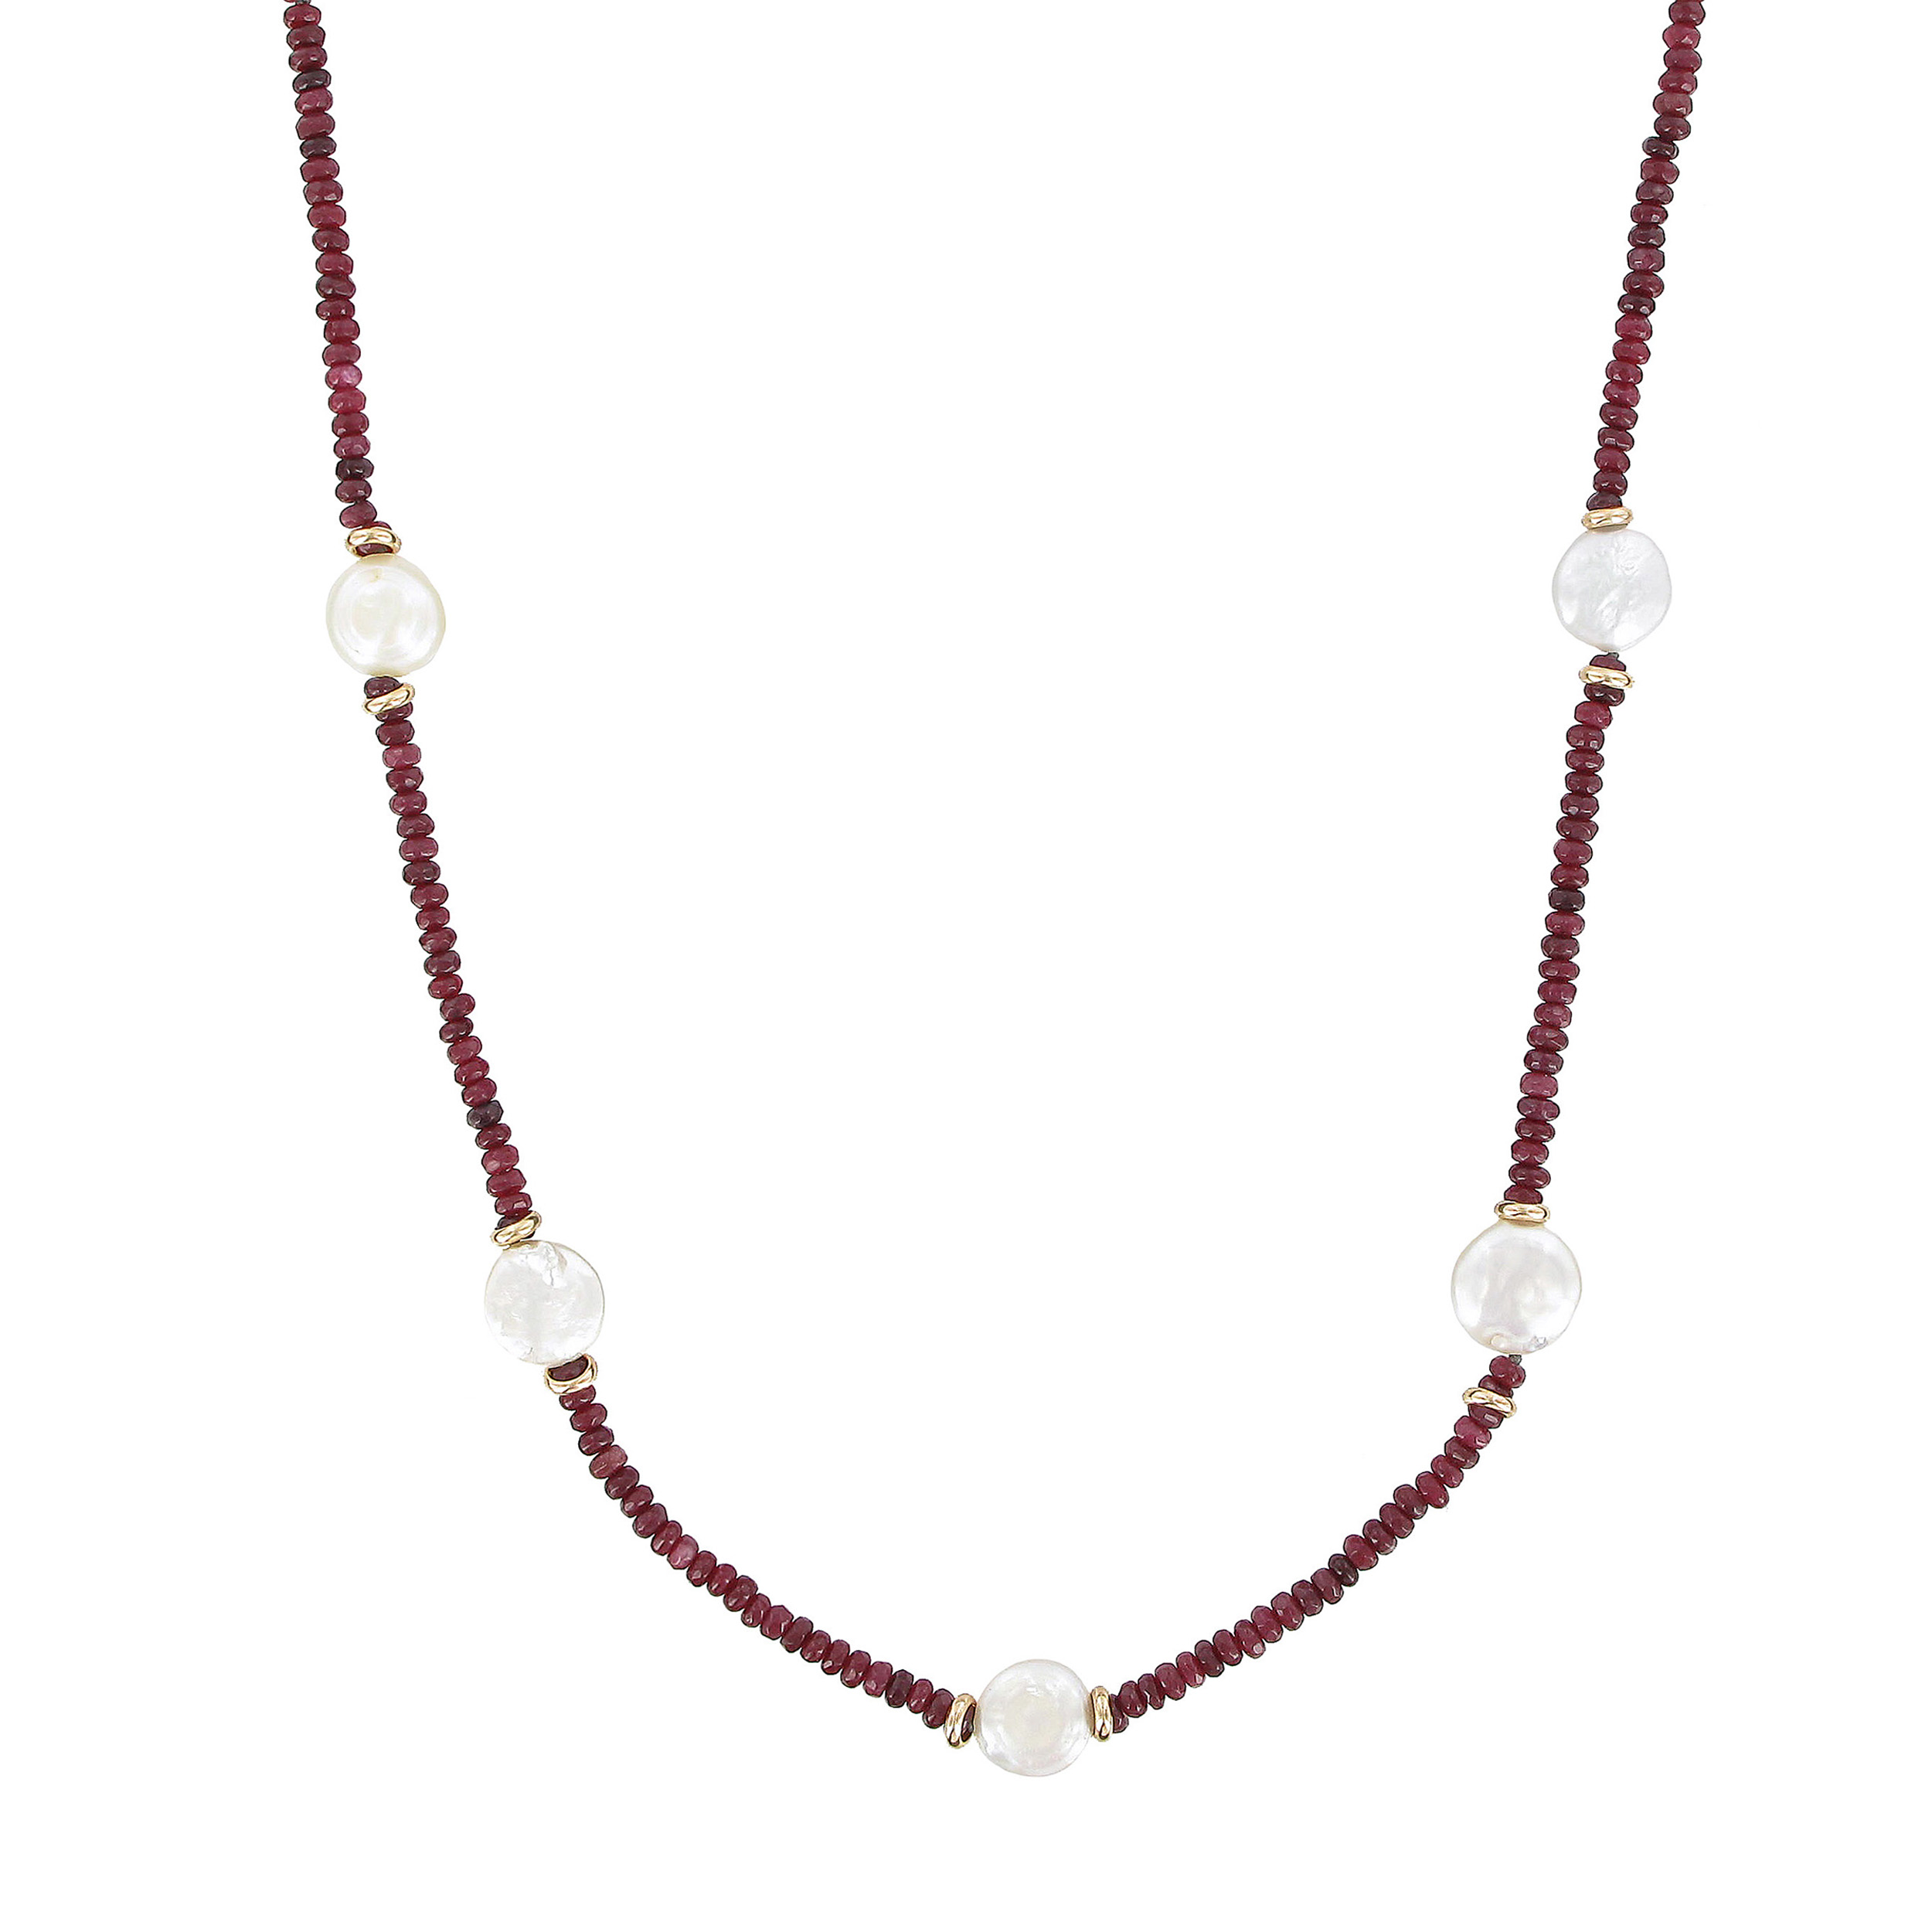 Red jade, pearl and white coin necklace